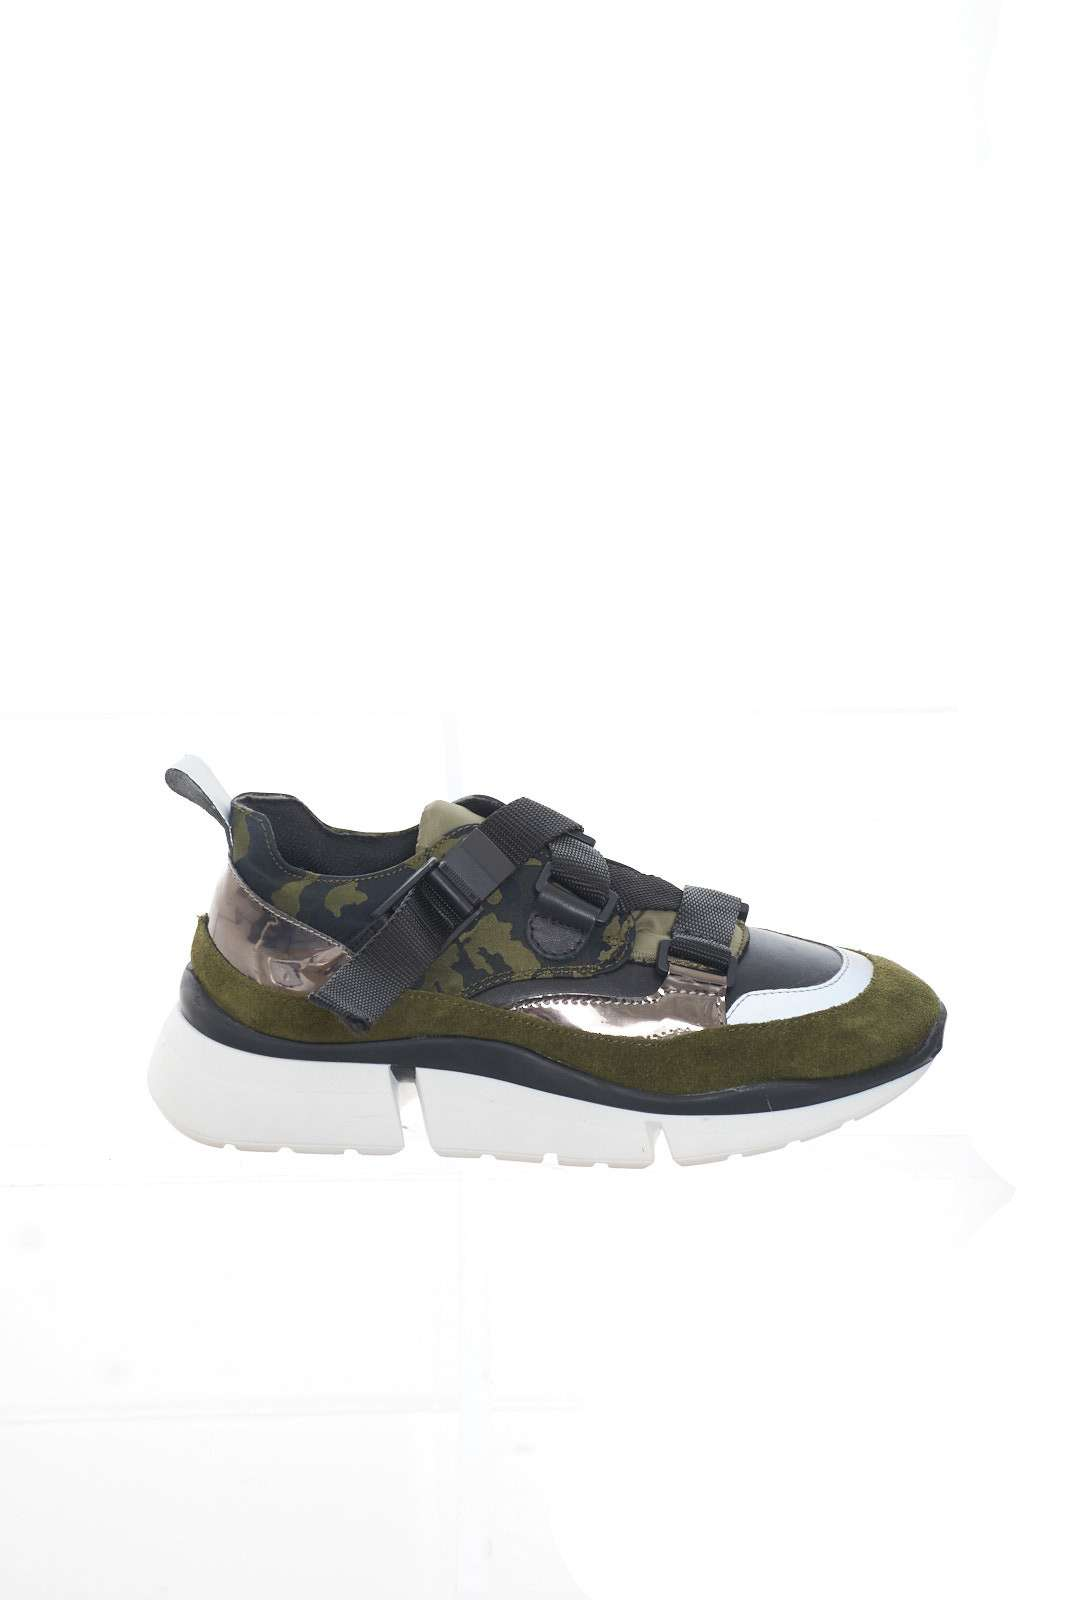 https://www.parmax.com/media/catalog/product/a/i/AI-outlet_parmax-sneaker-donna-PoiLei-1222A-A.jpg